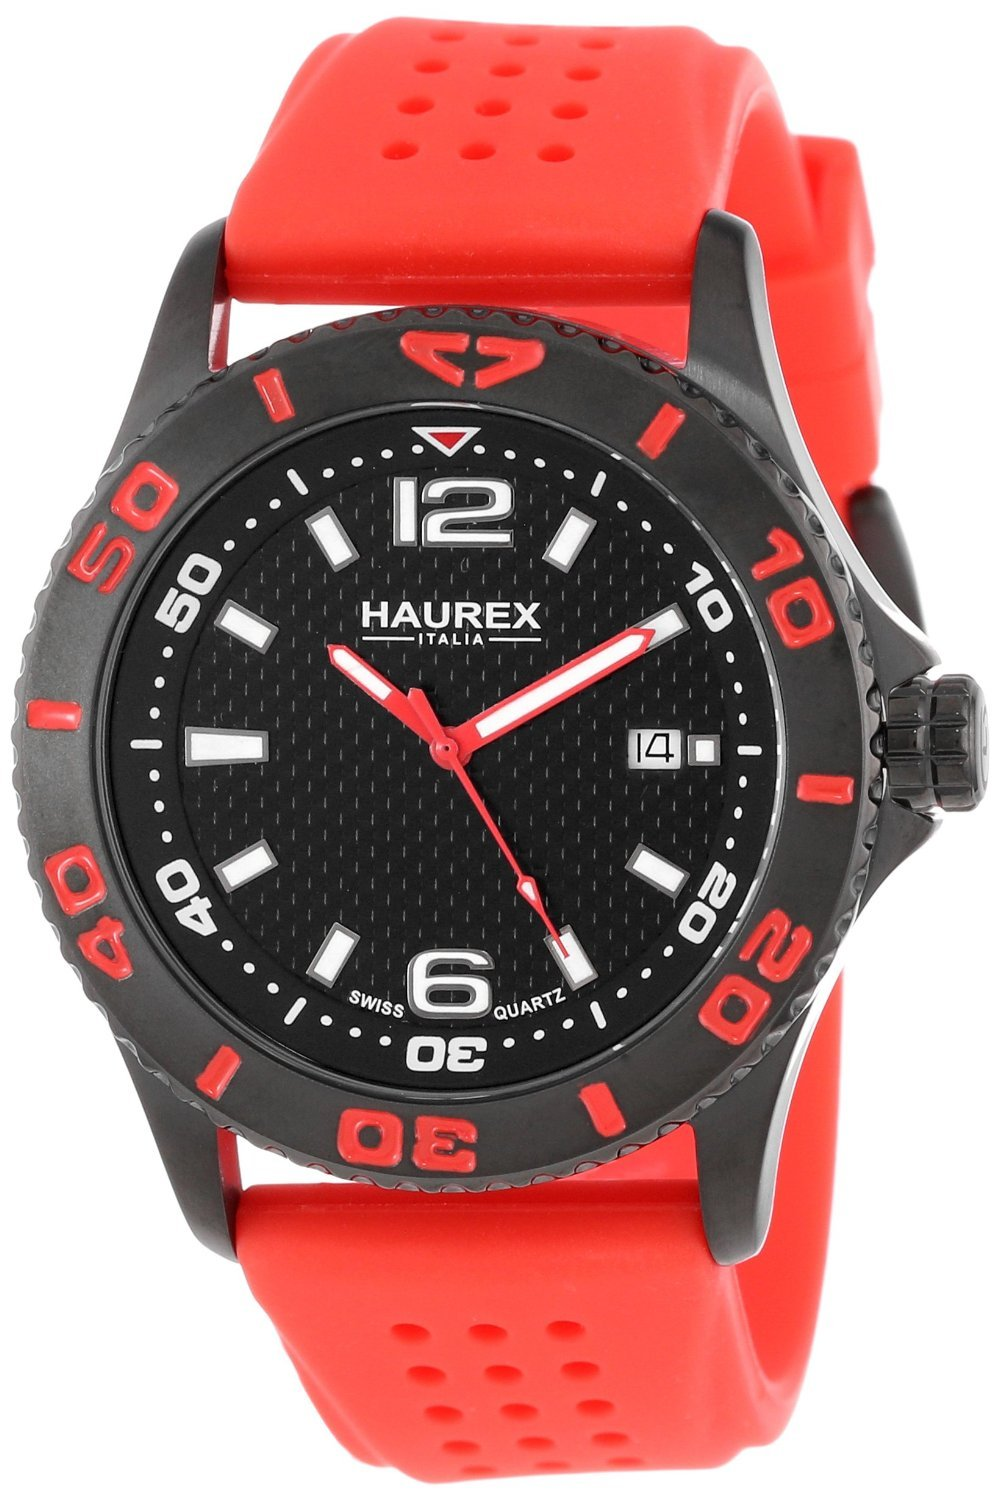 Amazon.com: RELOJ para HOMBRE HAUREX ITALY 3N500U FACTOR BLACK ION-PLATED COATED STAINLESS STEEL ROTATING BEZEL DATE color Red-Rn: Health & Personal Care